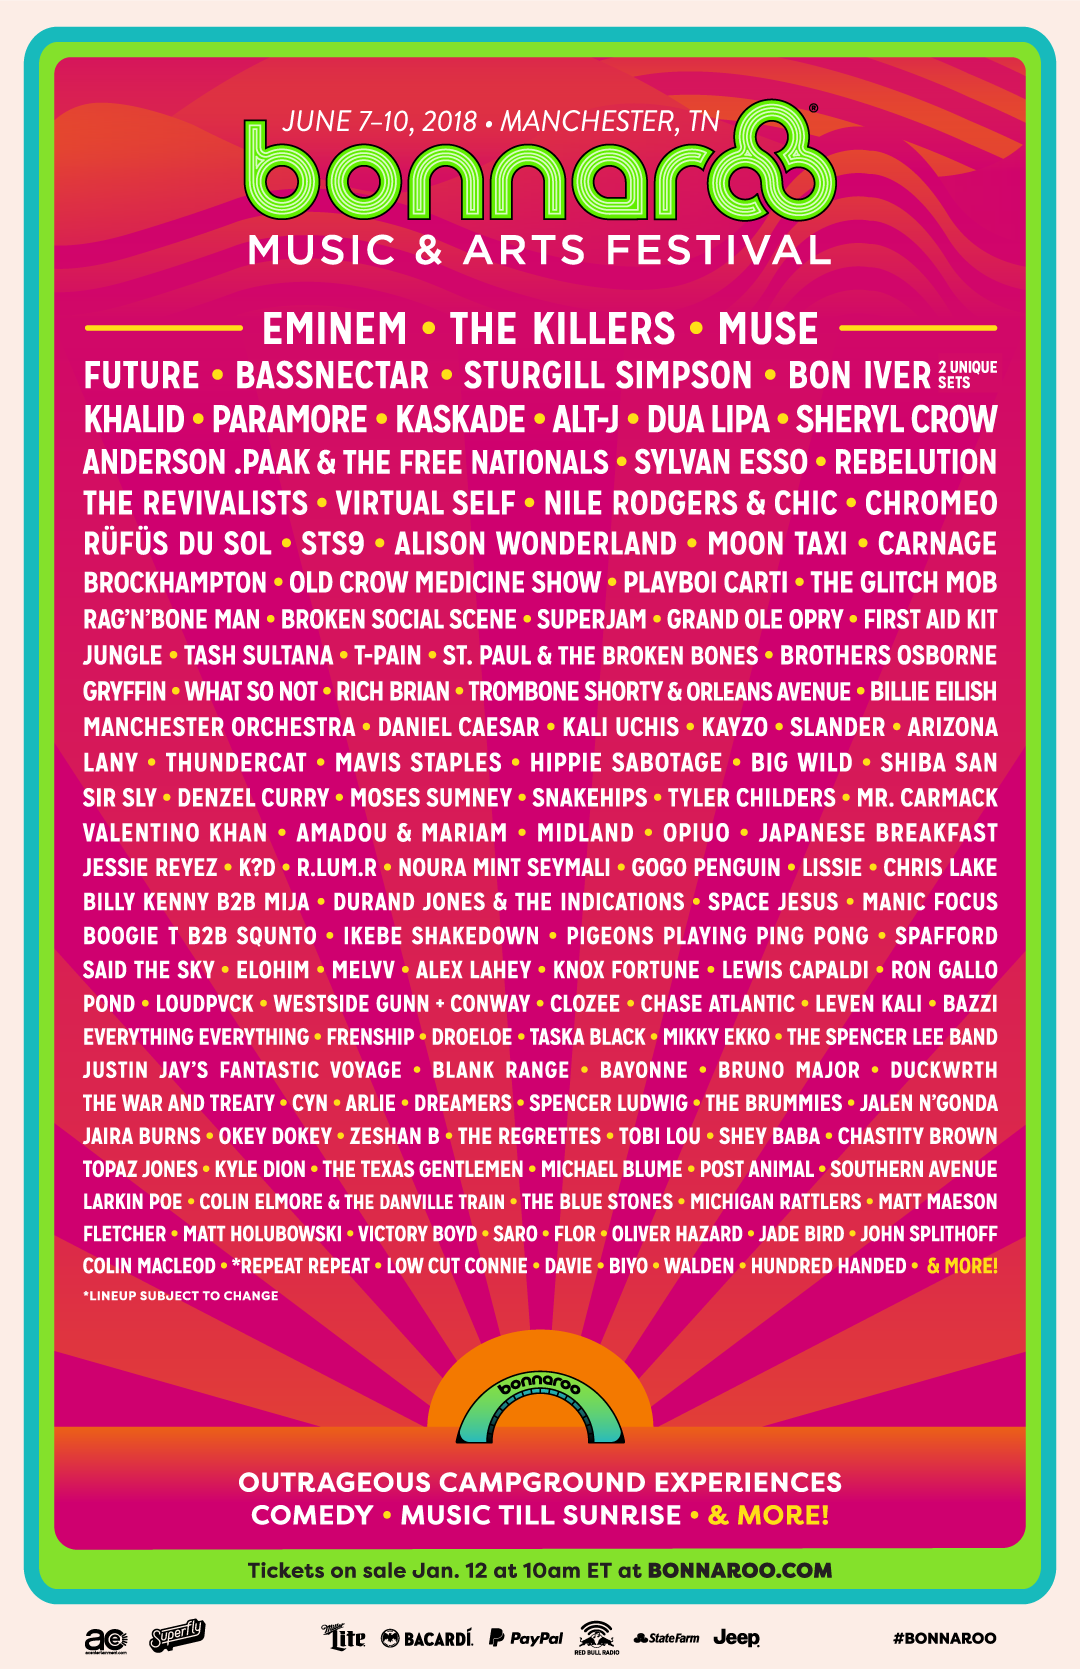 07a851746 Bonnaroo dropped an incredibly diverse lineup for its 2018 installation and  the talent which includes Bassnectar, Kaskade, Virtual Self, What So Not,  Kayzo, ...